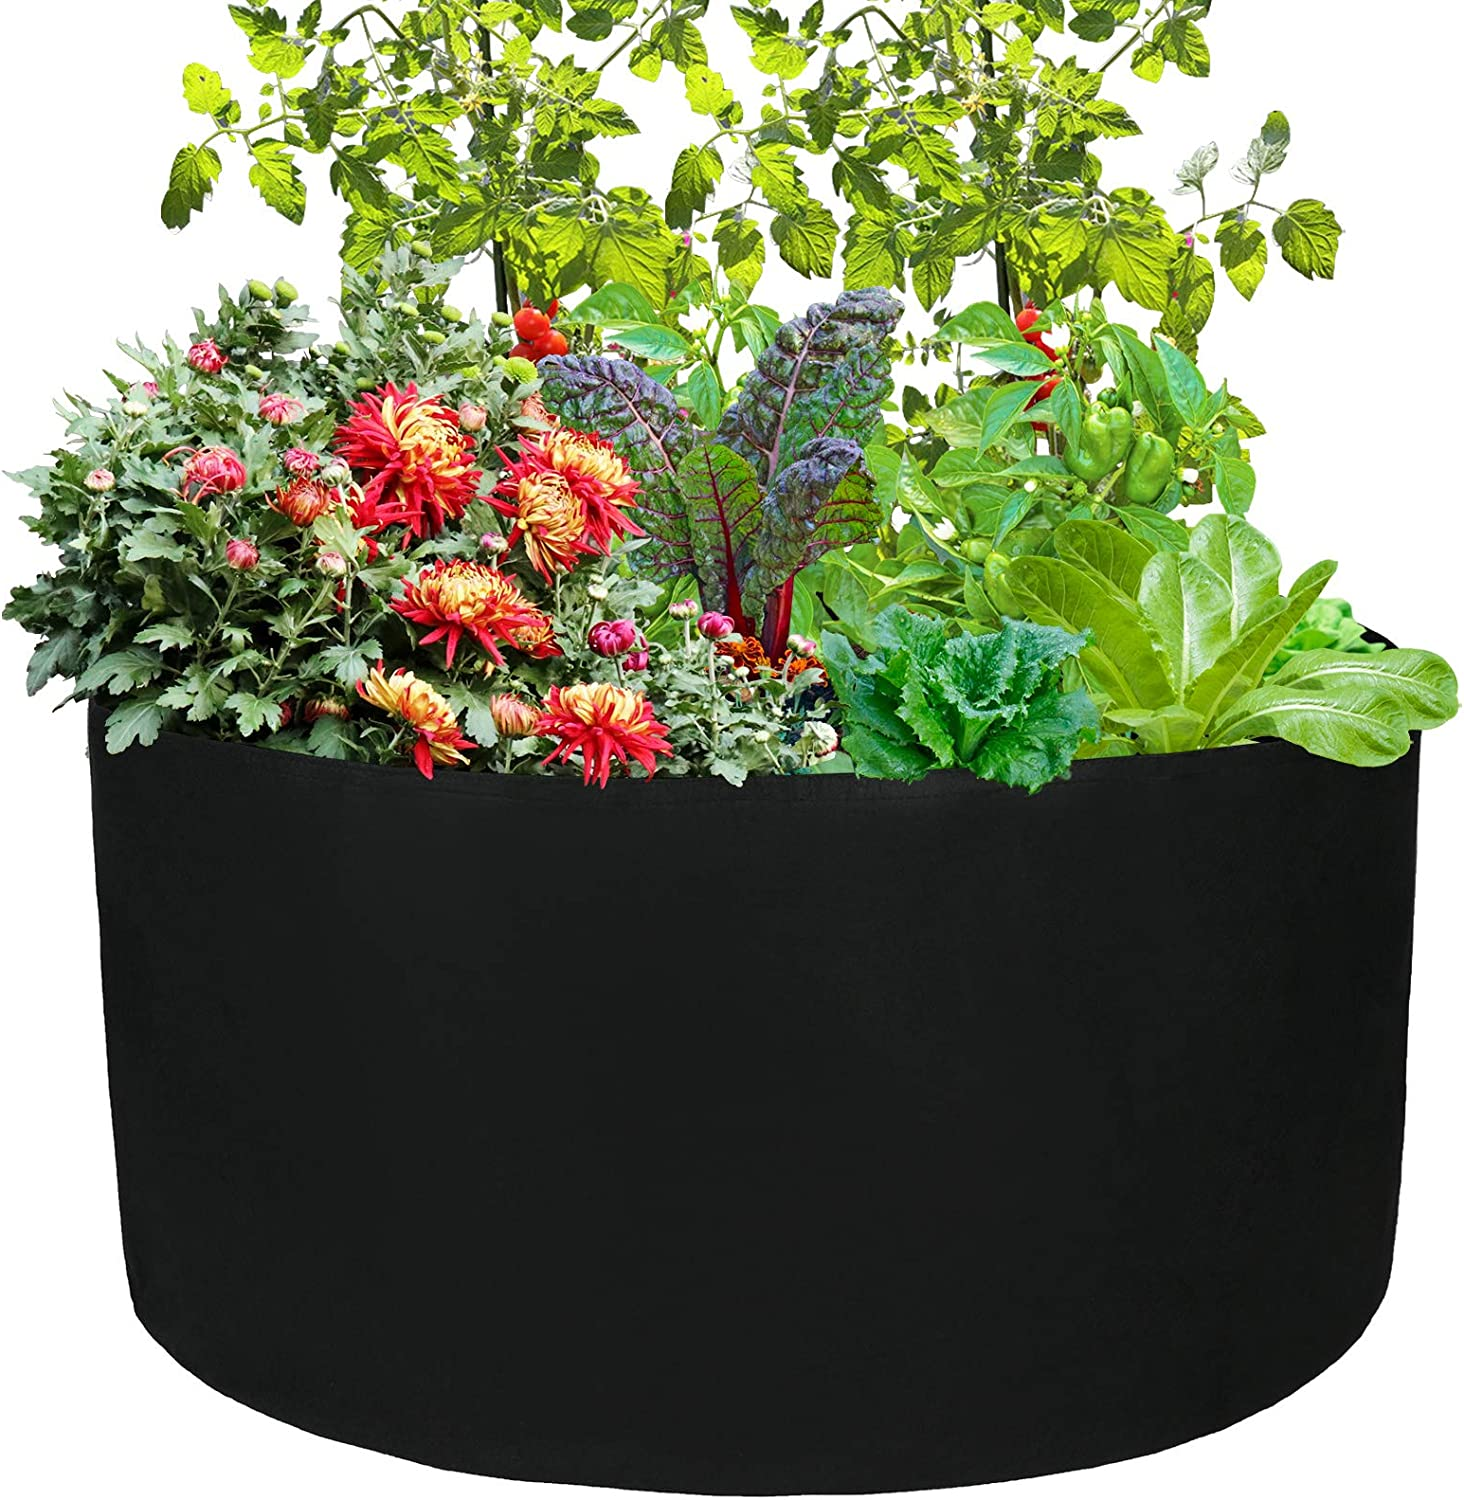 2Krmstr 100 Gallon Round Fabric Plant Grow Bags, Heavy Duty Fabric Aeration Pots Container, Smart Planting Pots for Nursery Garden and Planting Potato, Strawberry, Chili, Peanut and Other Vegetables